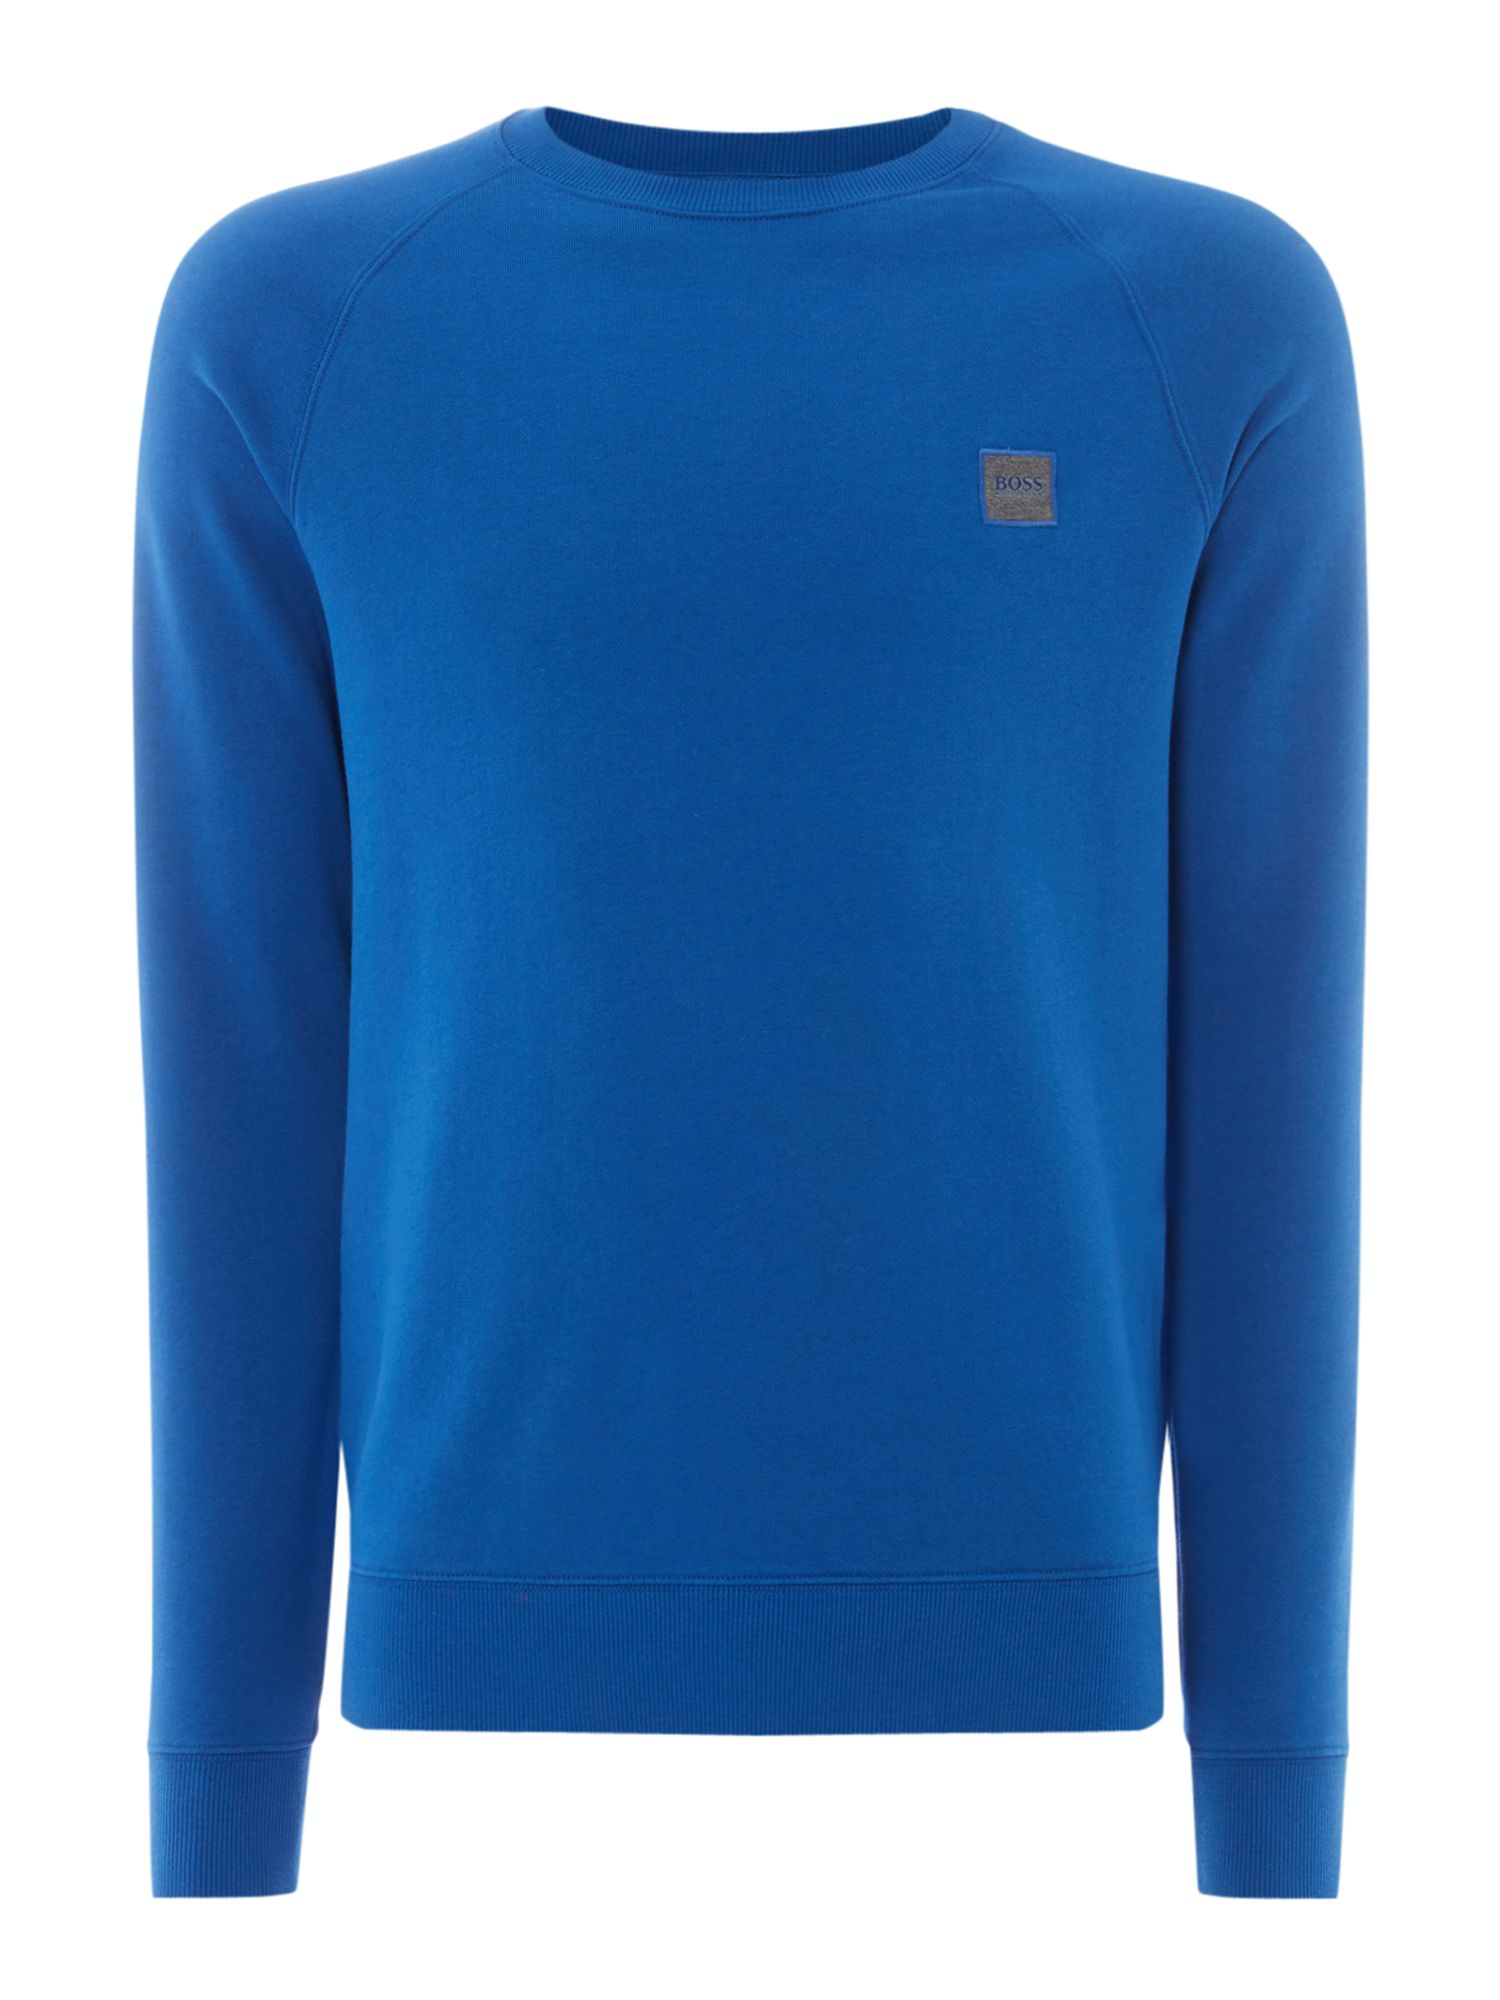 Men's Hugo Boss Wheel UK crew neck sweatshirt, Blue